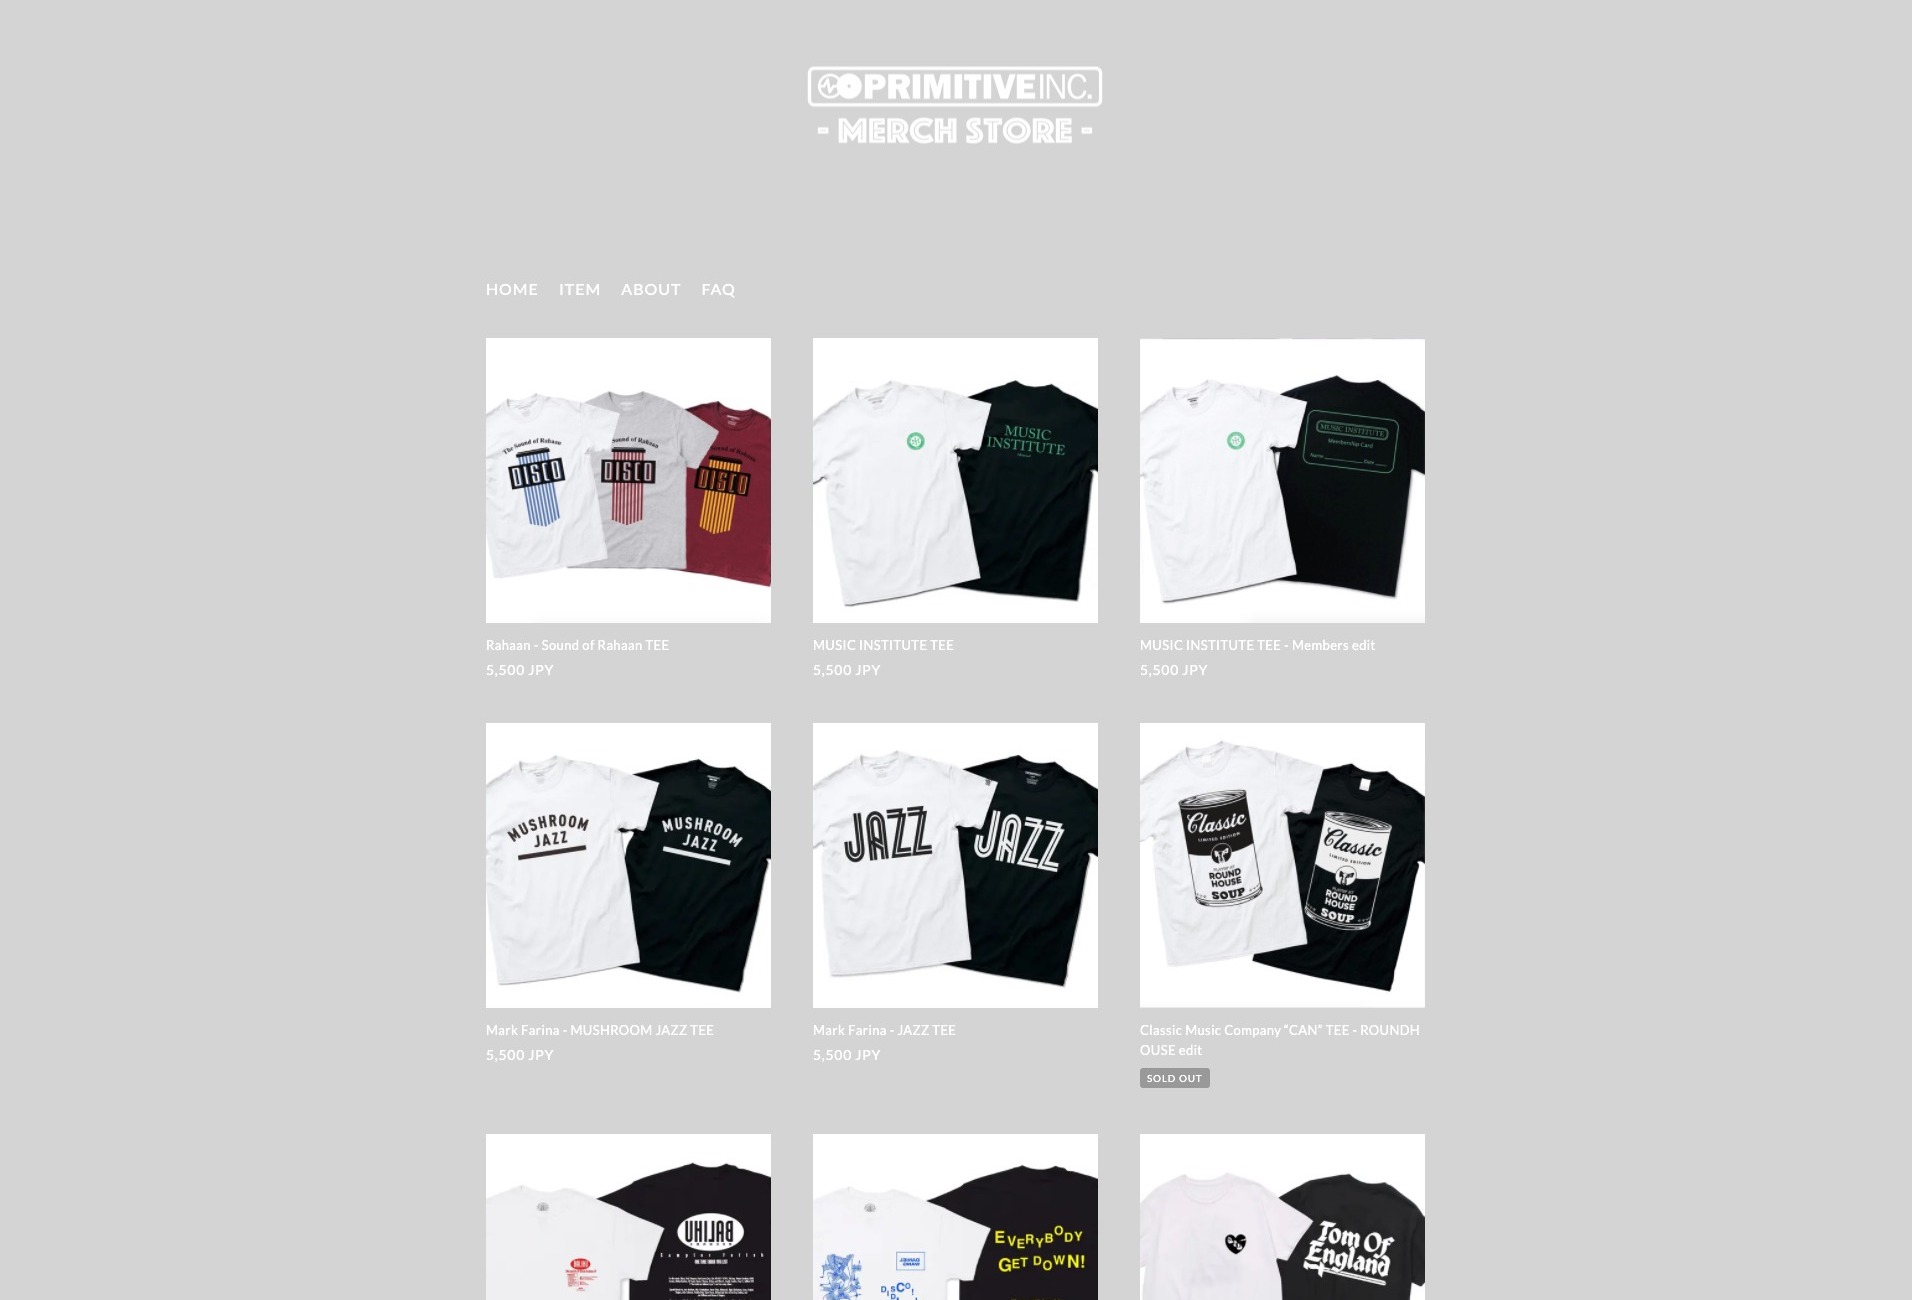 PRIMITIVE INC. MERCH STORE - primitive-inc-online.stores.jp